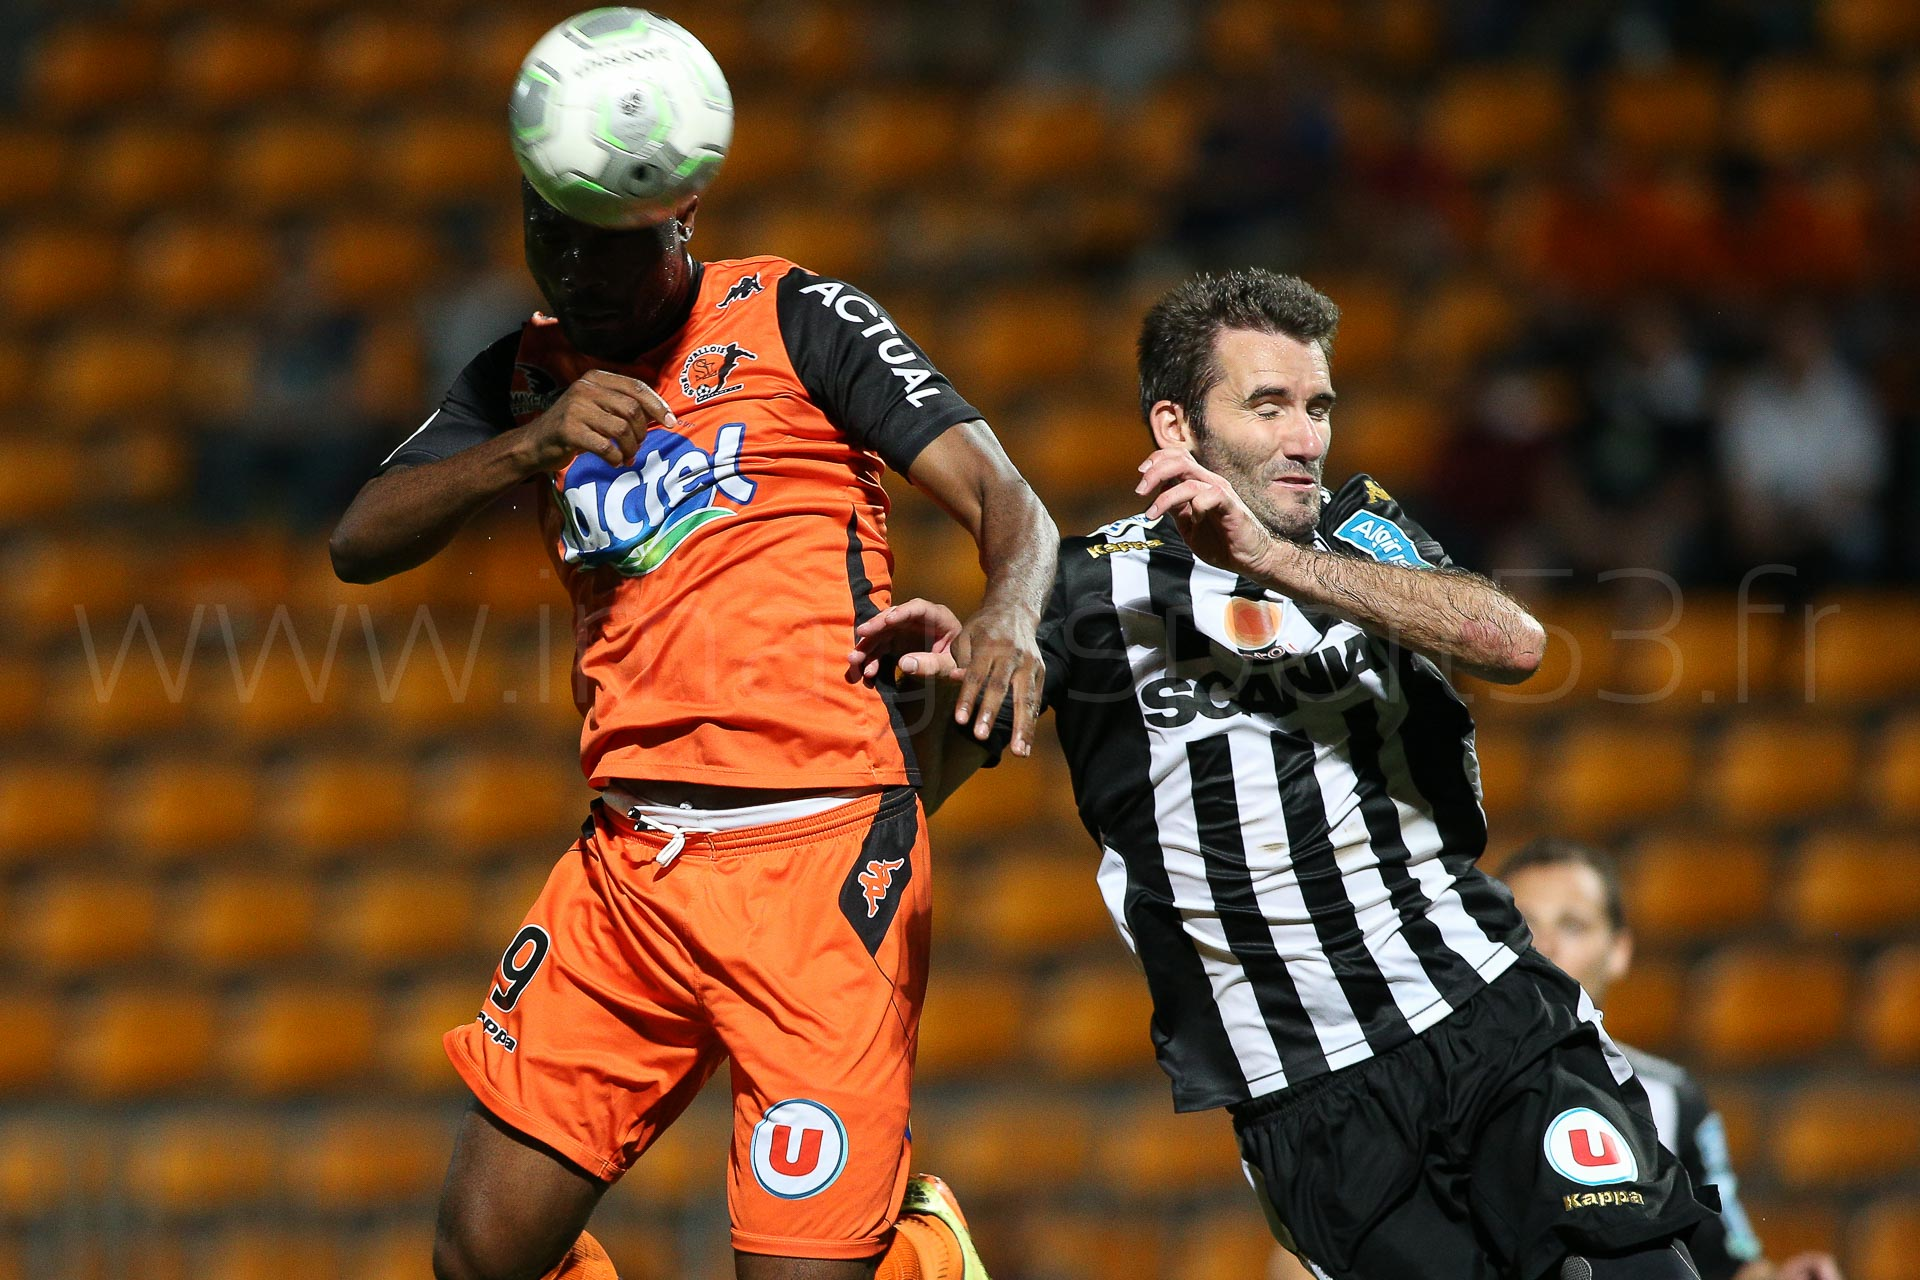 NG-Ligue2-1415-J07-Laval-Angers_23